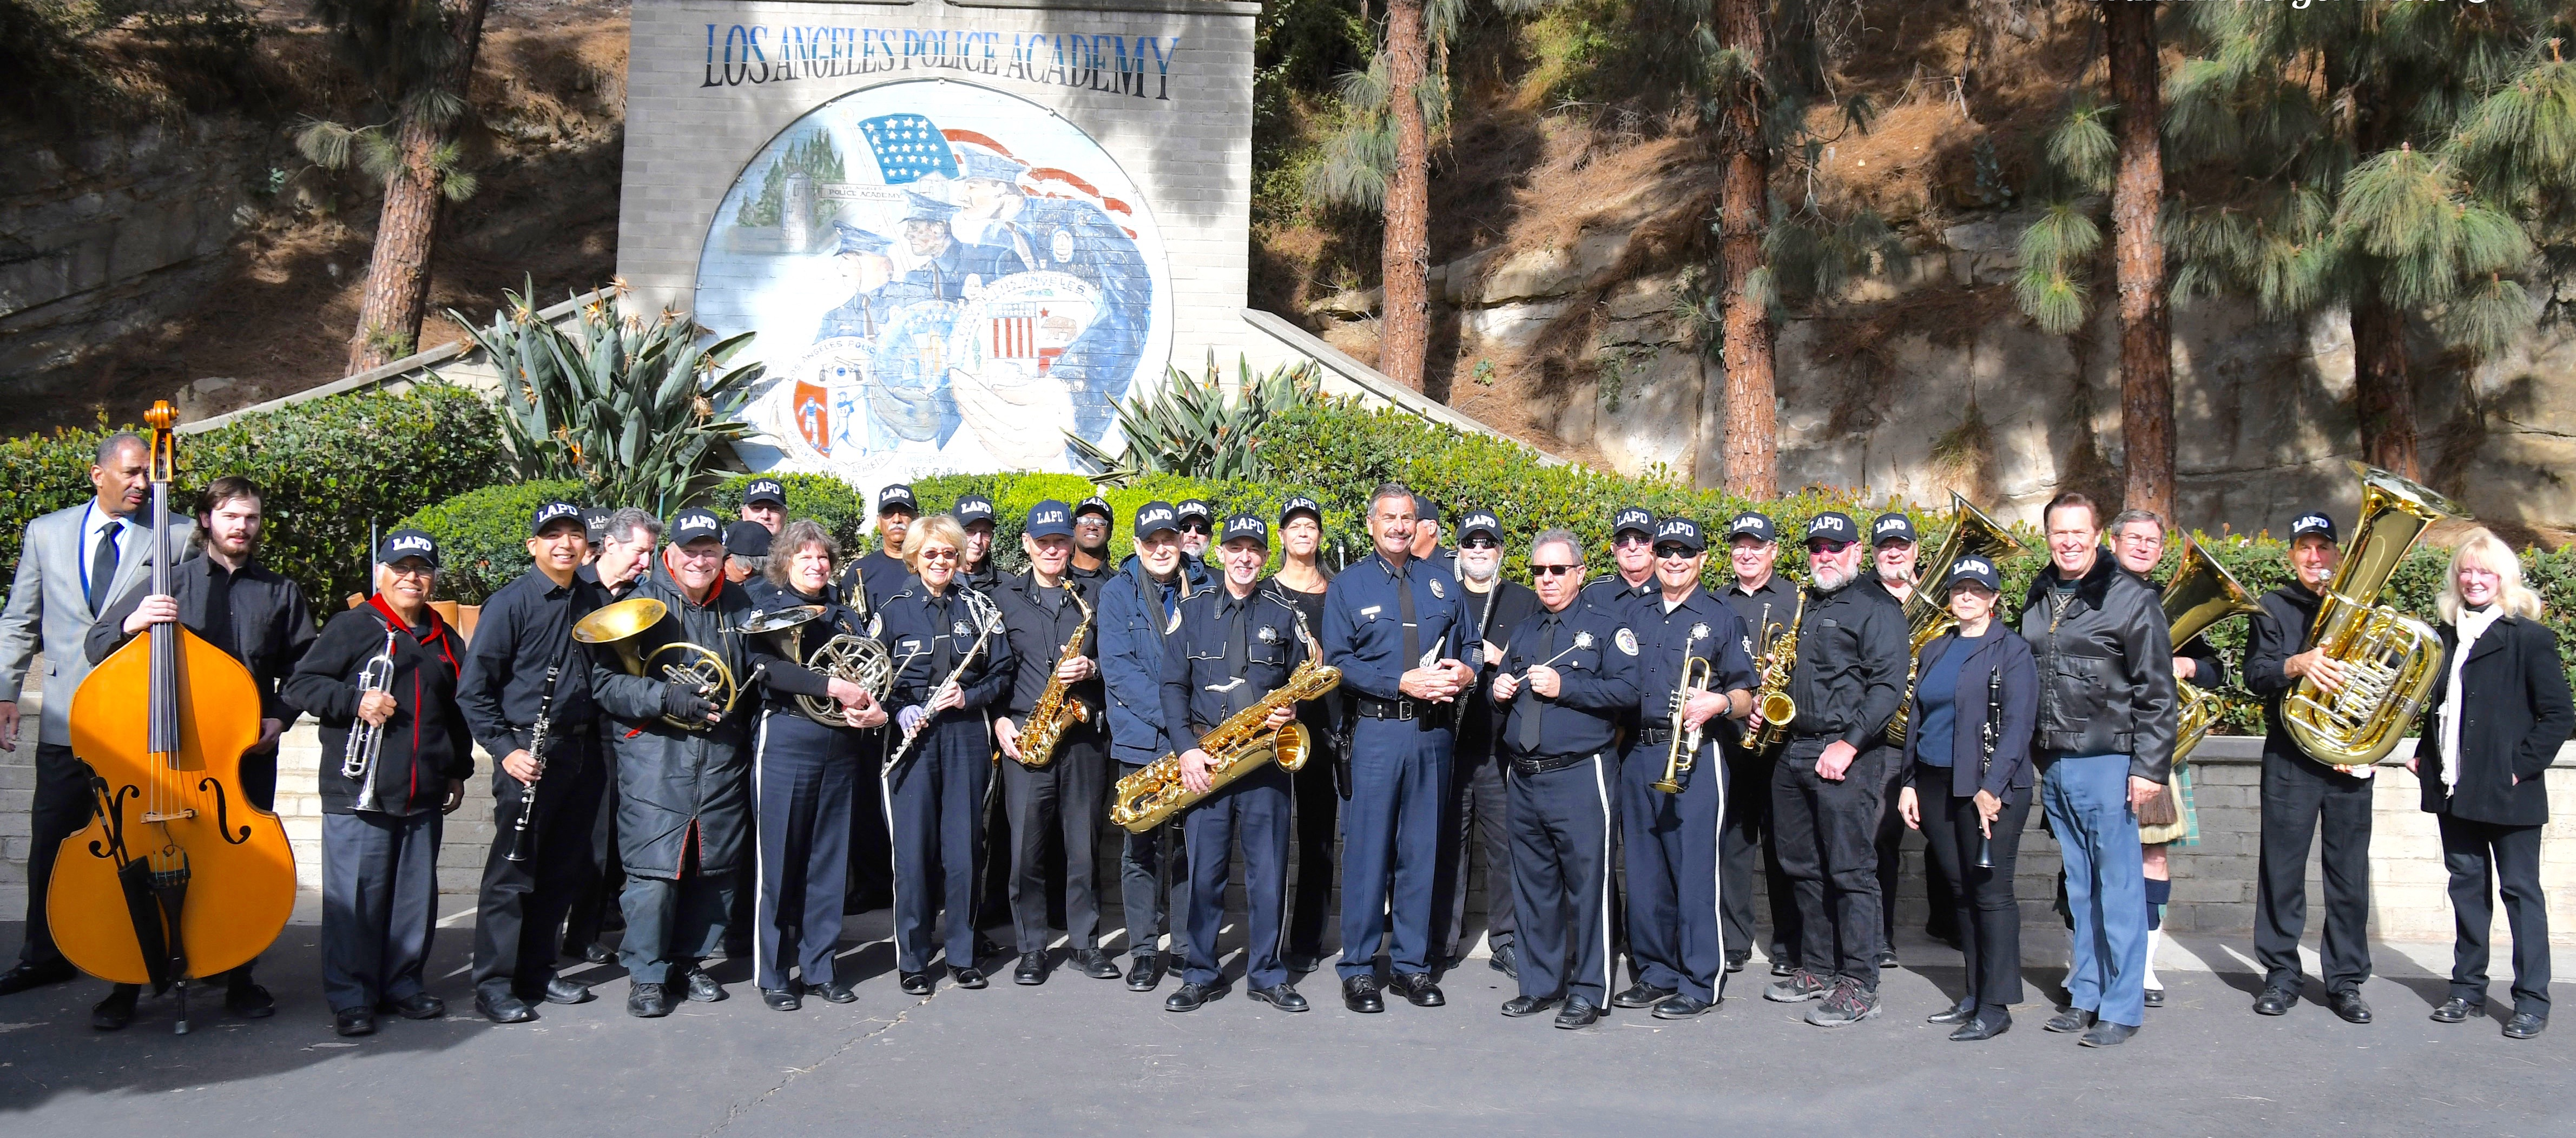 The LAPD Concert Band